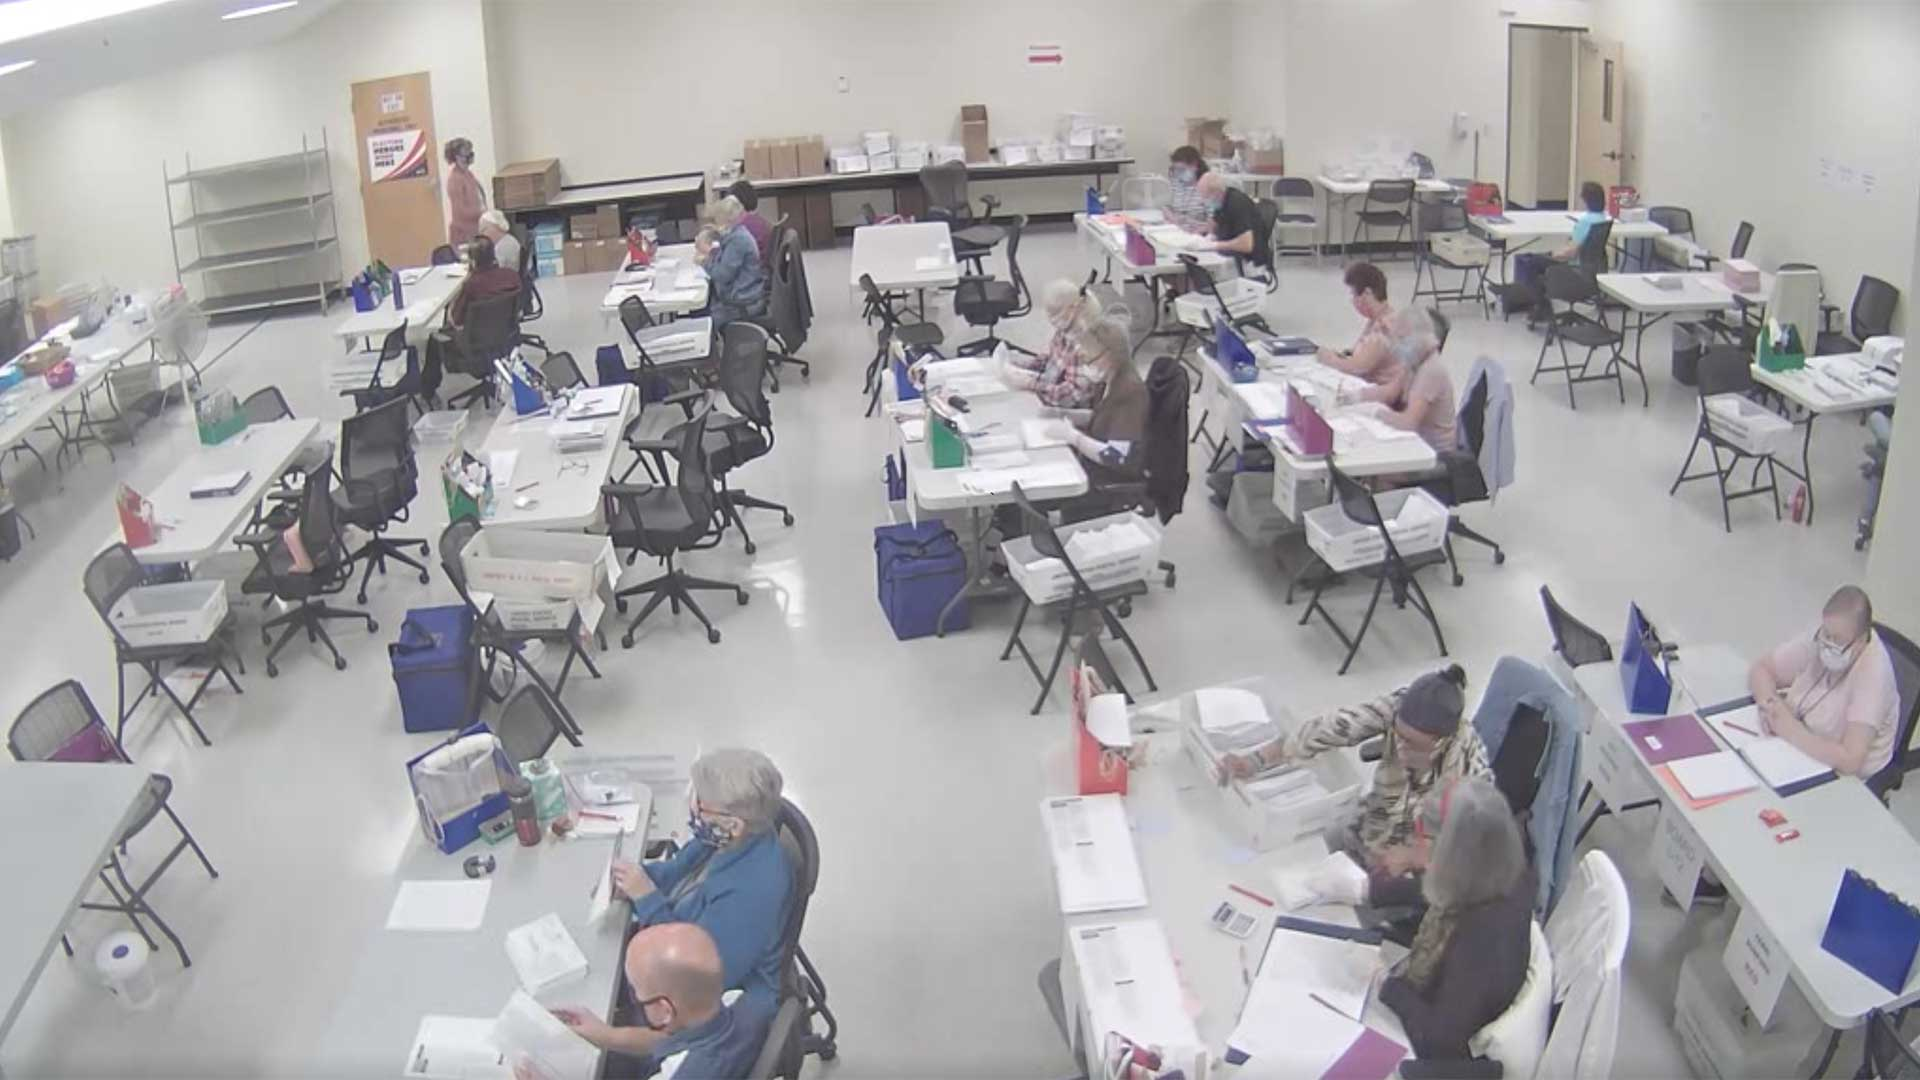 Pima County election workers process ballots the morning of Nov. 5, 2020 in this still image from the live feed of the early/provisional ballot processing room.